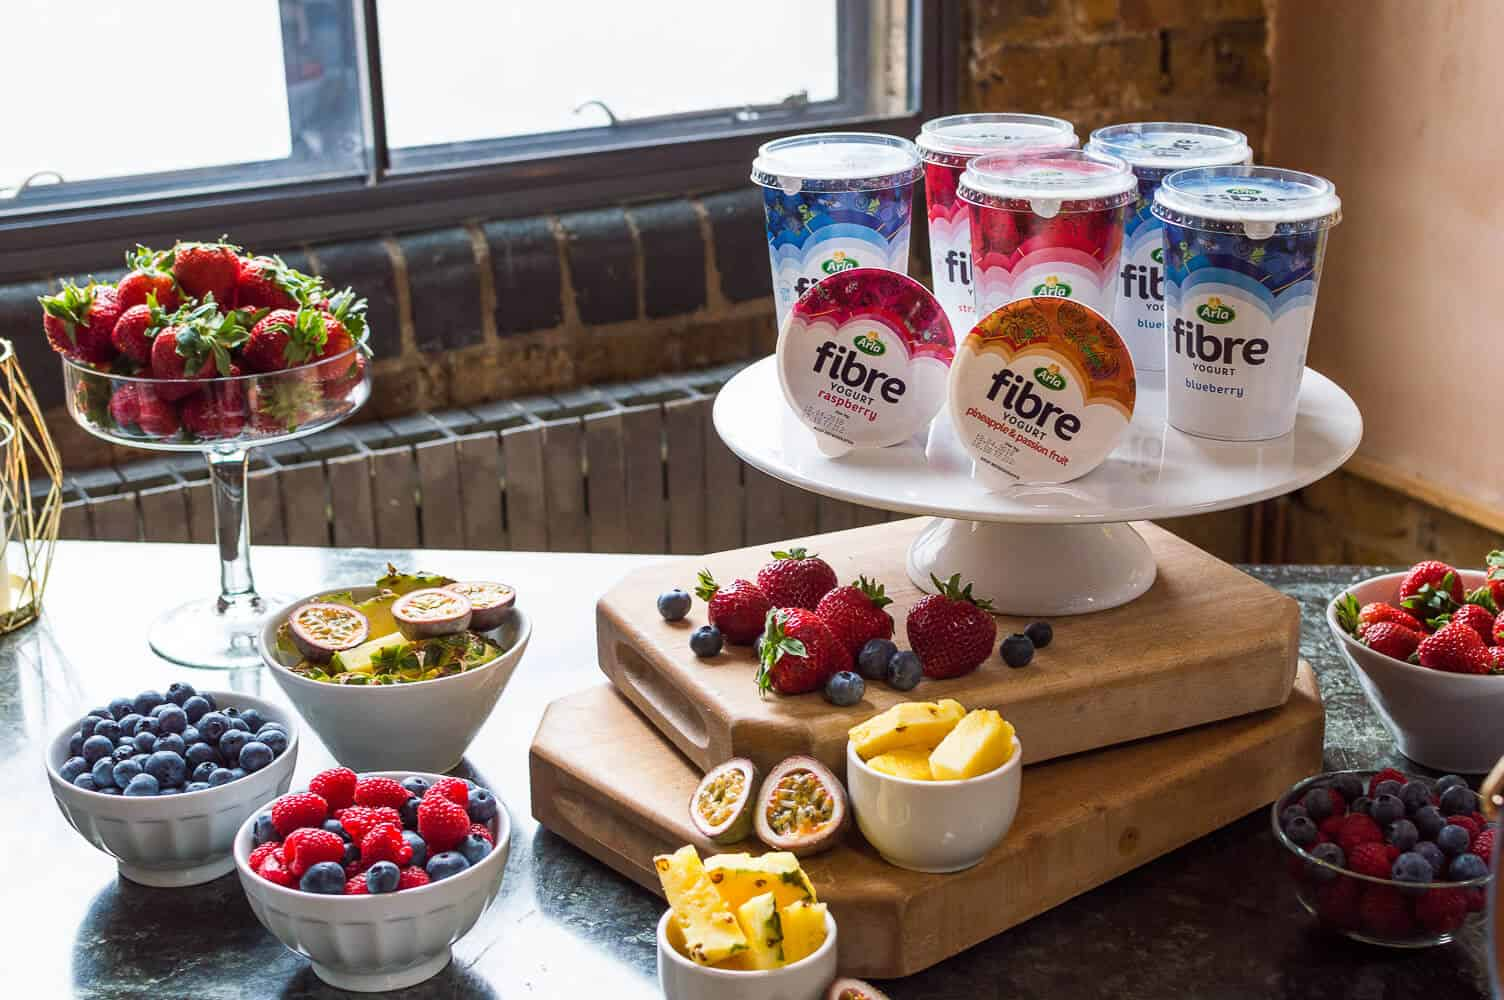 arla fibre yogurts and fruit